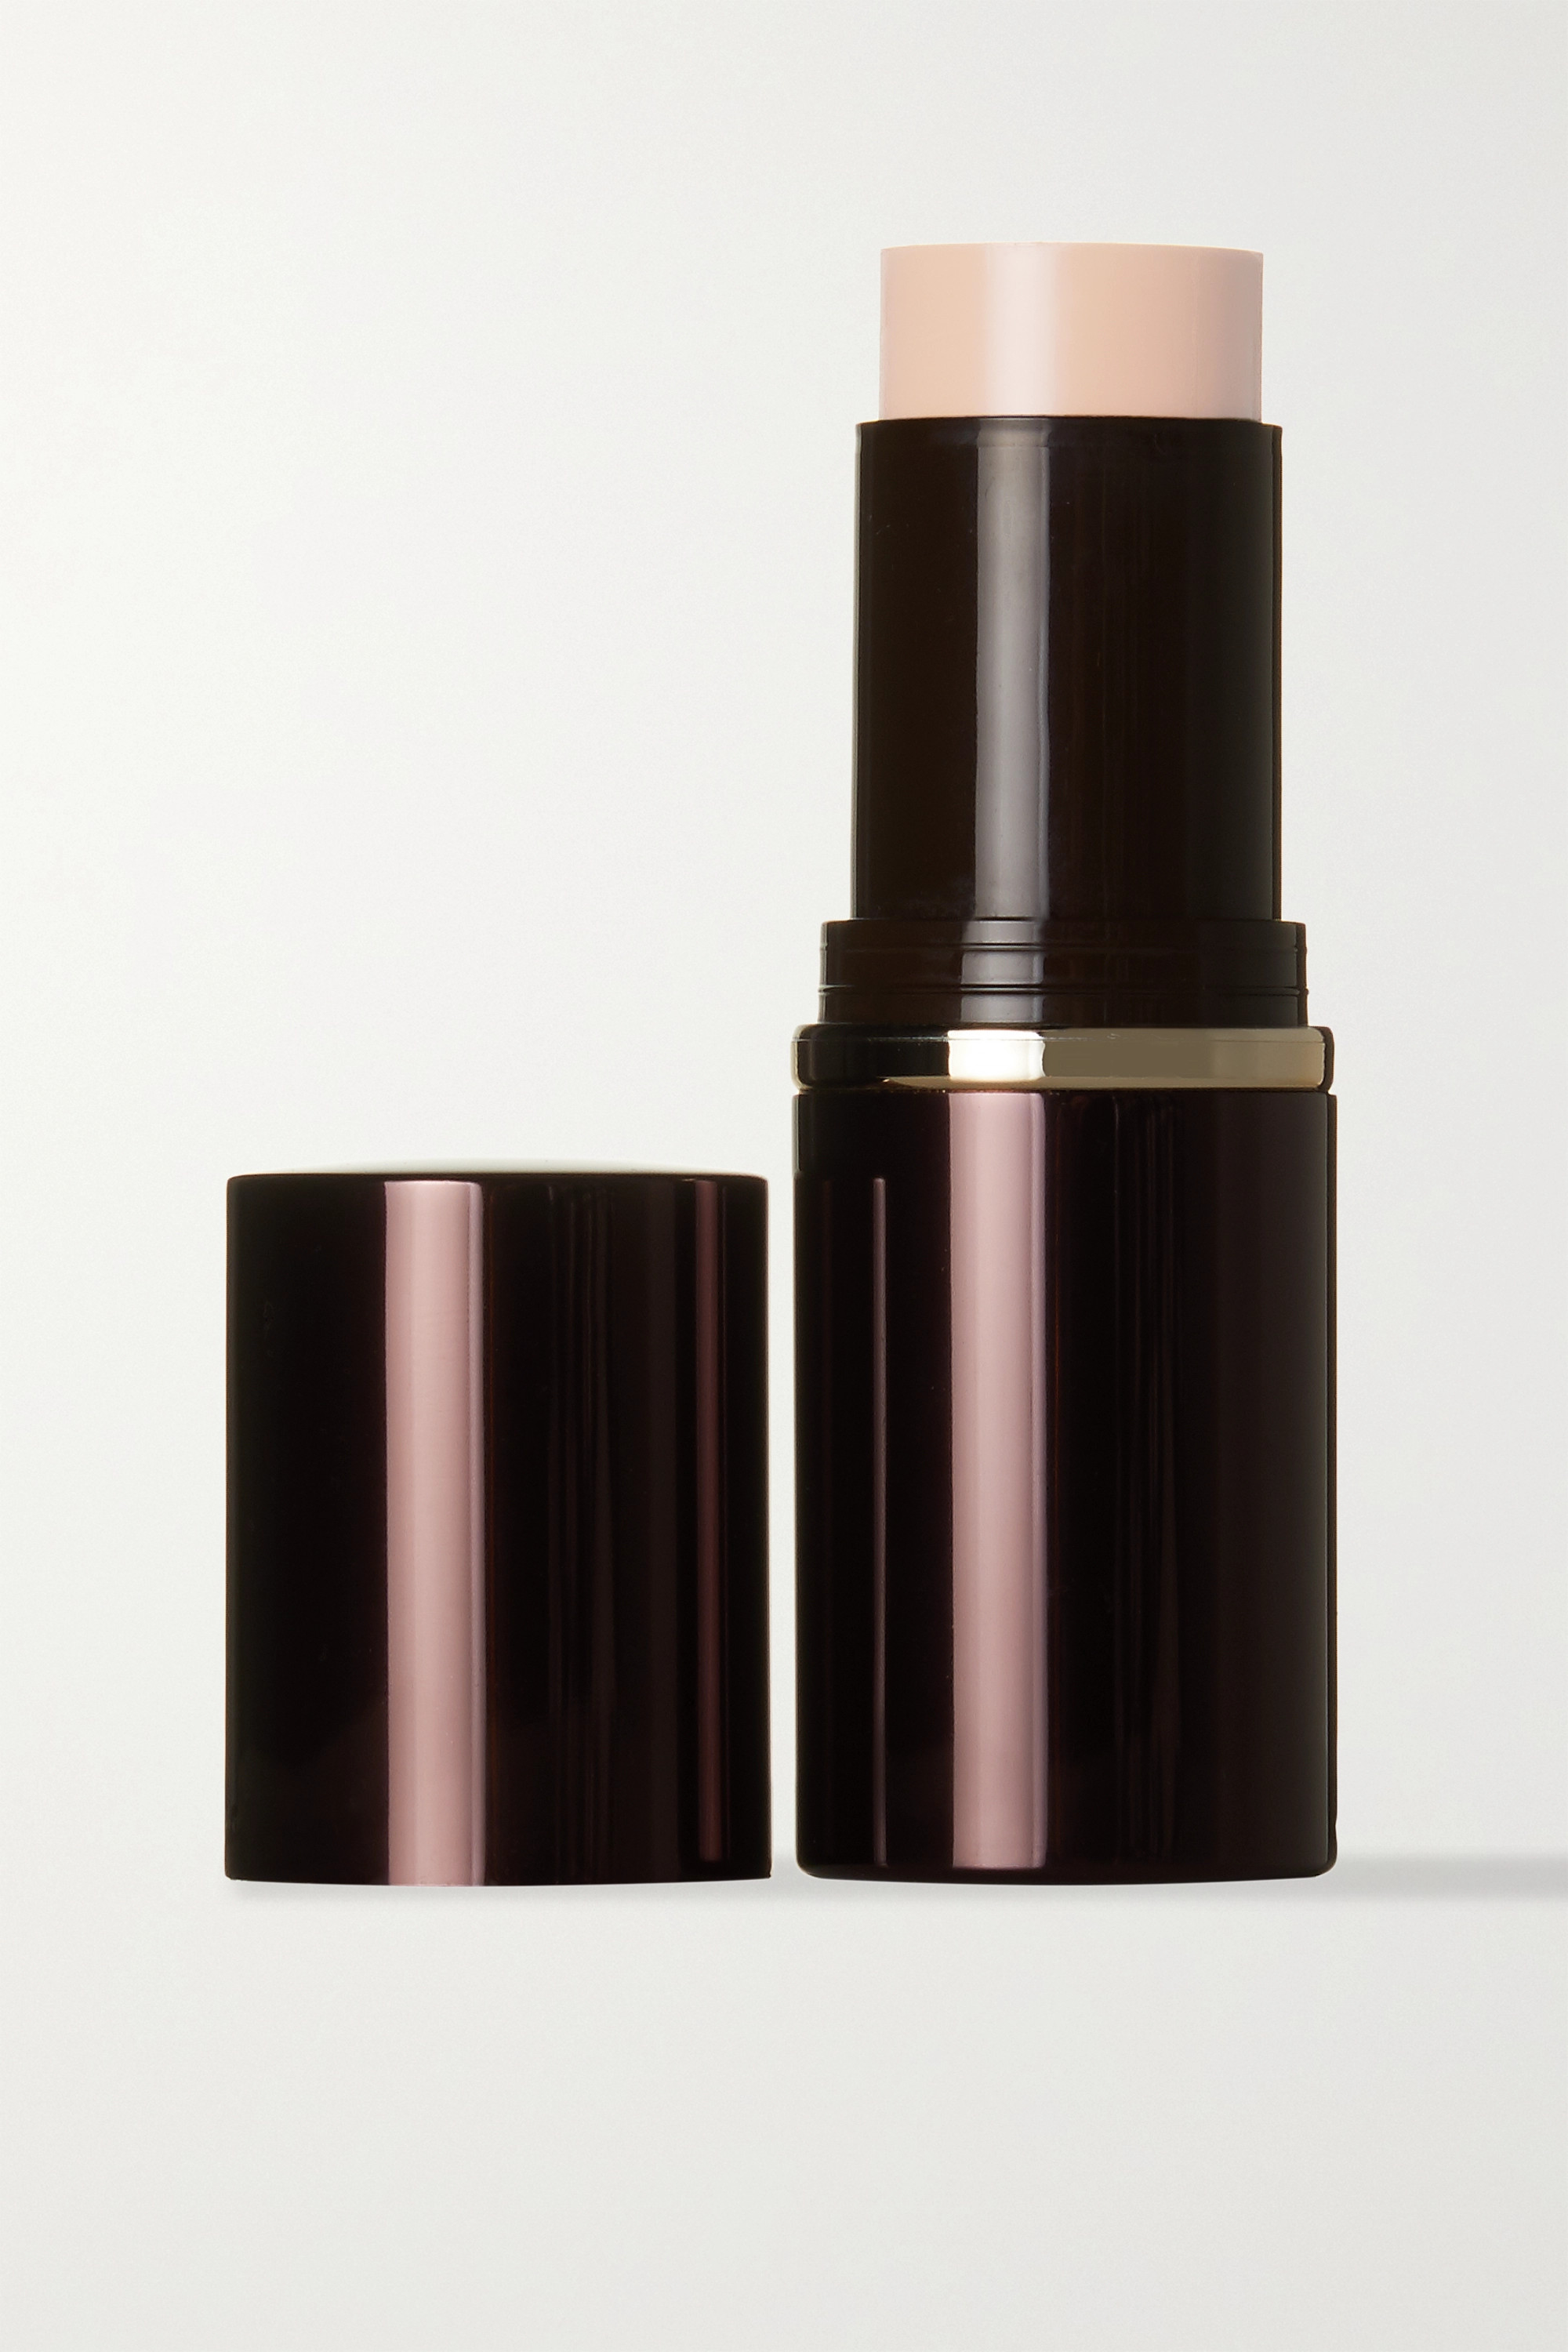 TOM FORD BEAUTY Fond de teint stick Invisible, Warm Sand